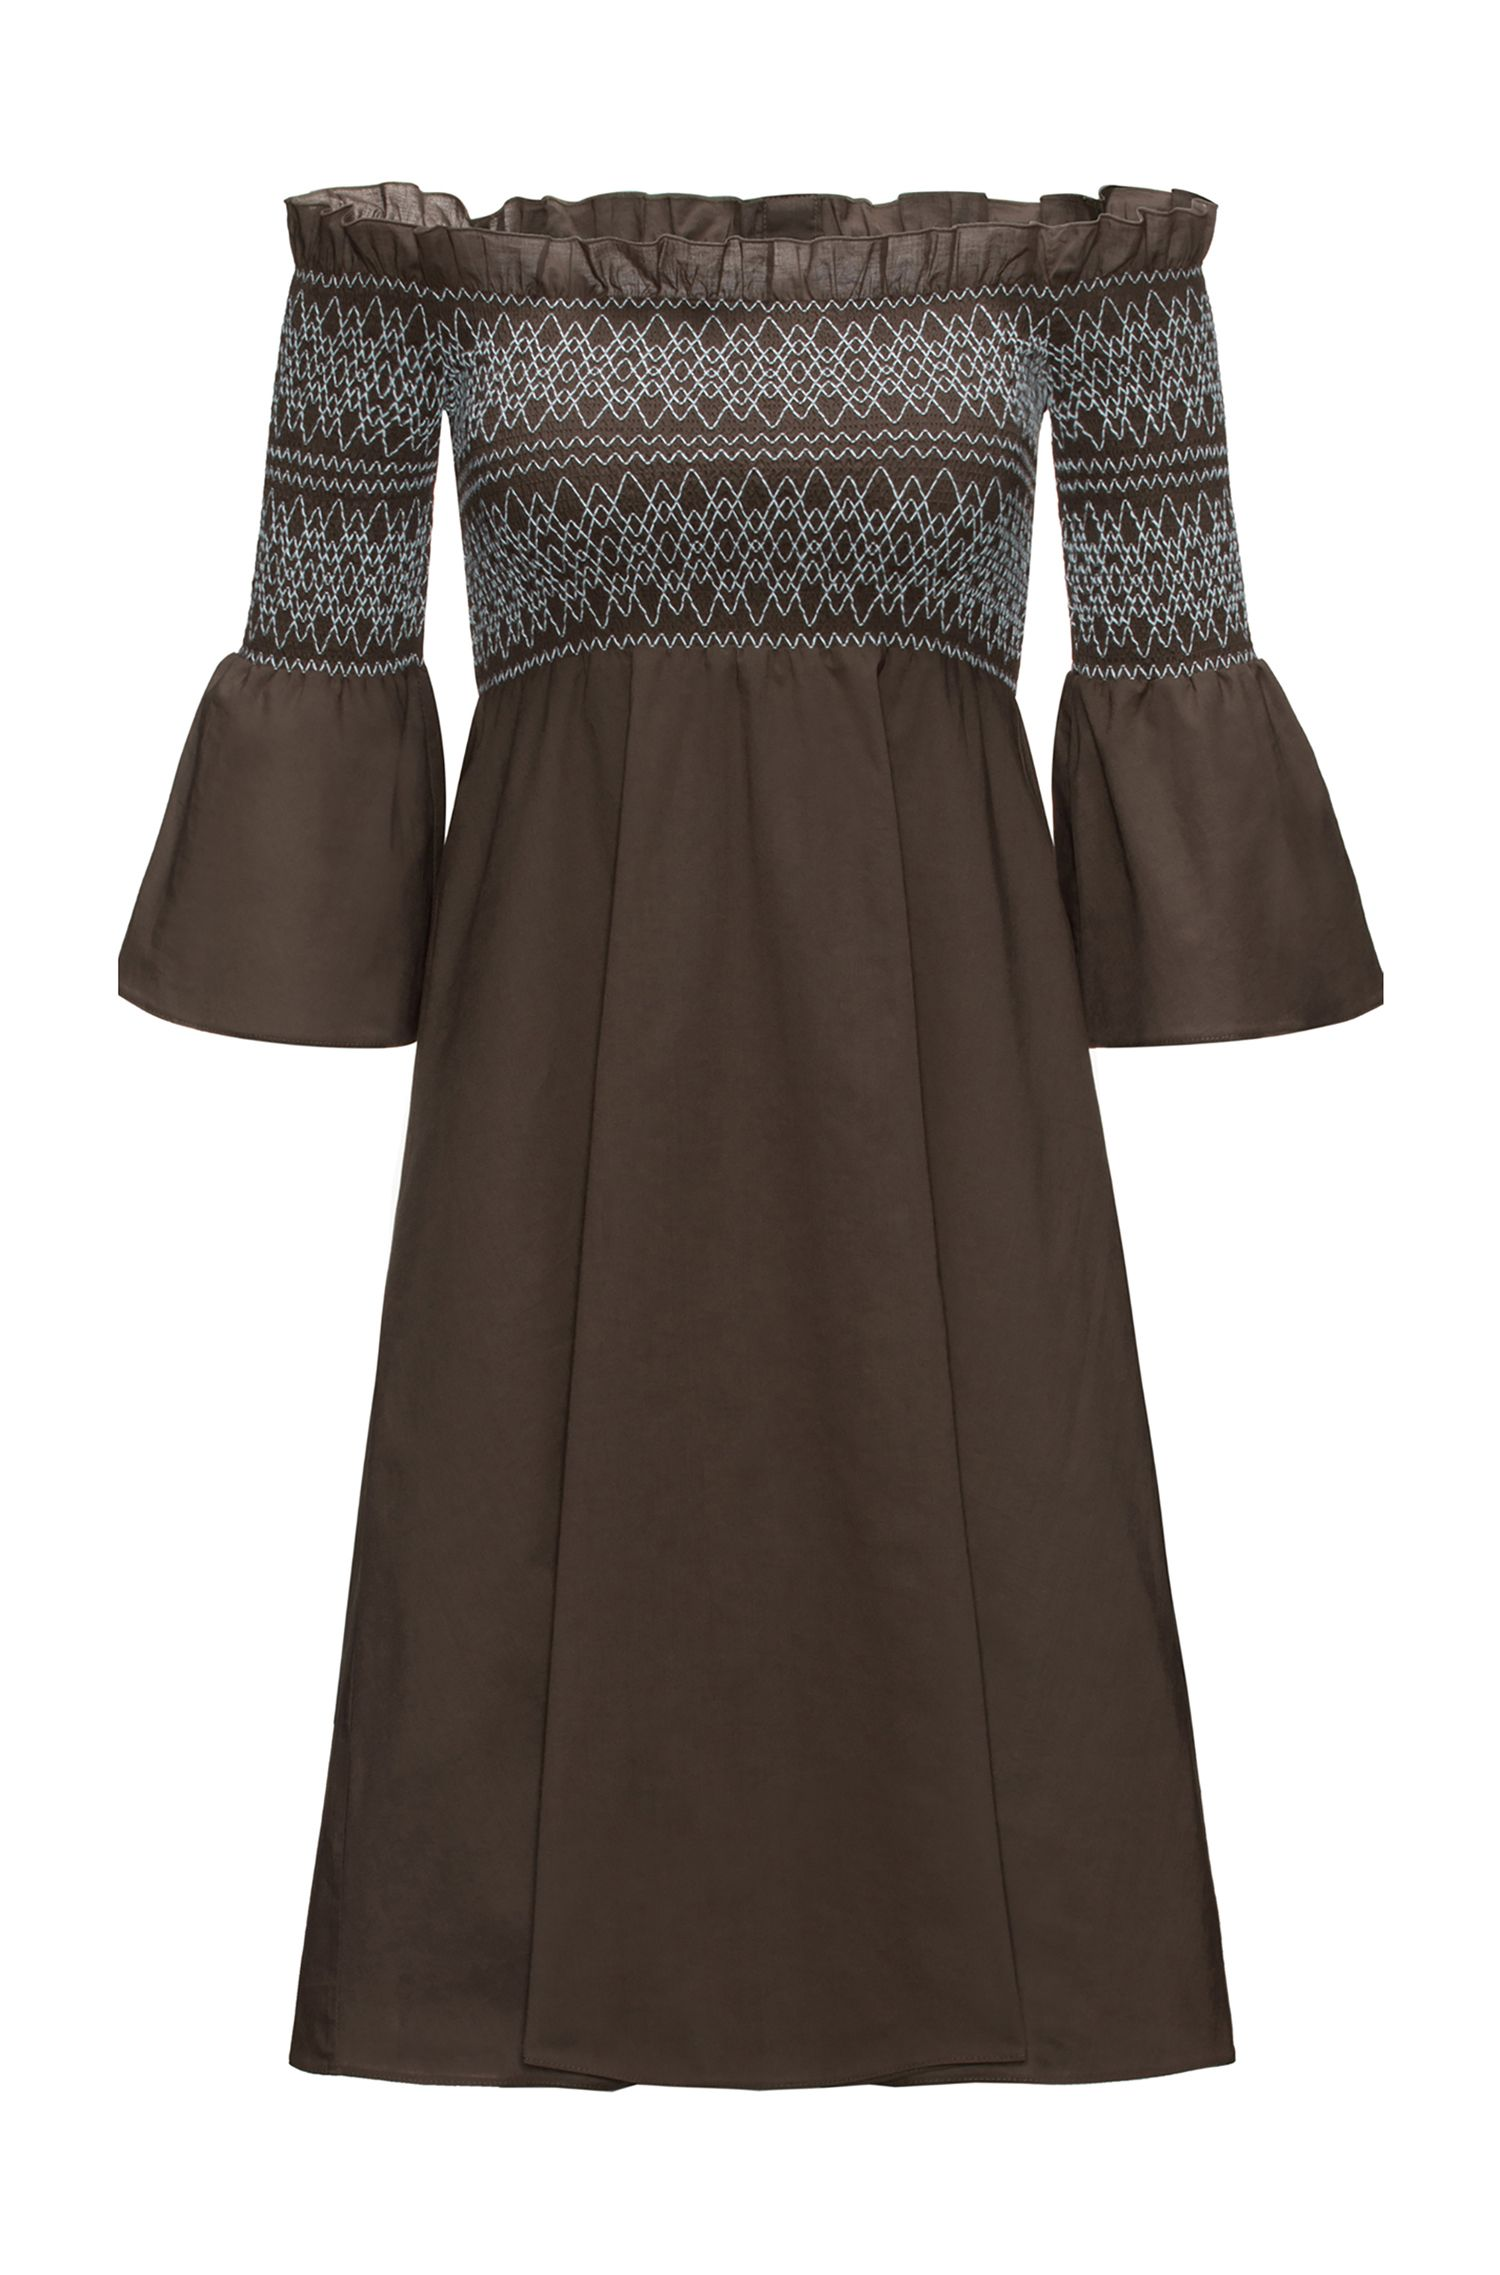 Off-the-shoulder cotton dress with smocking